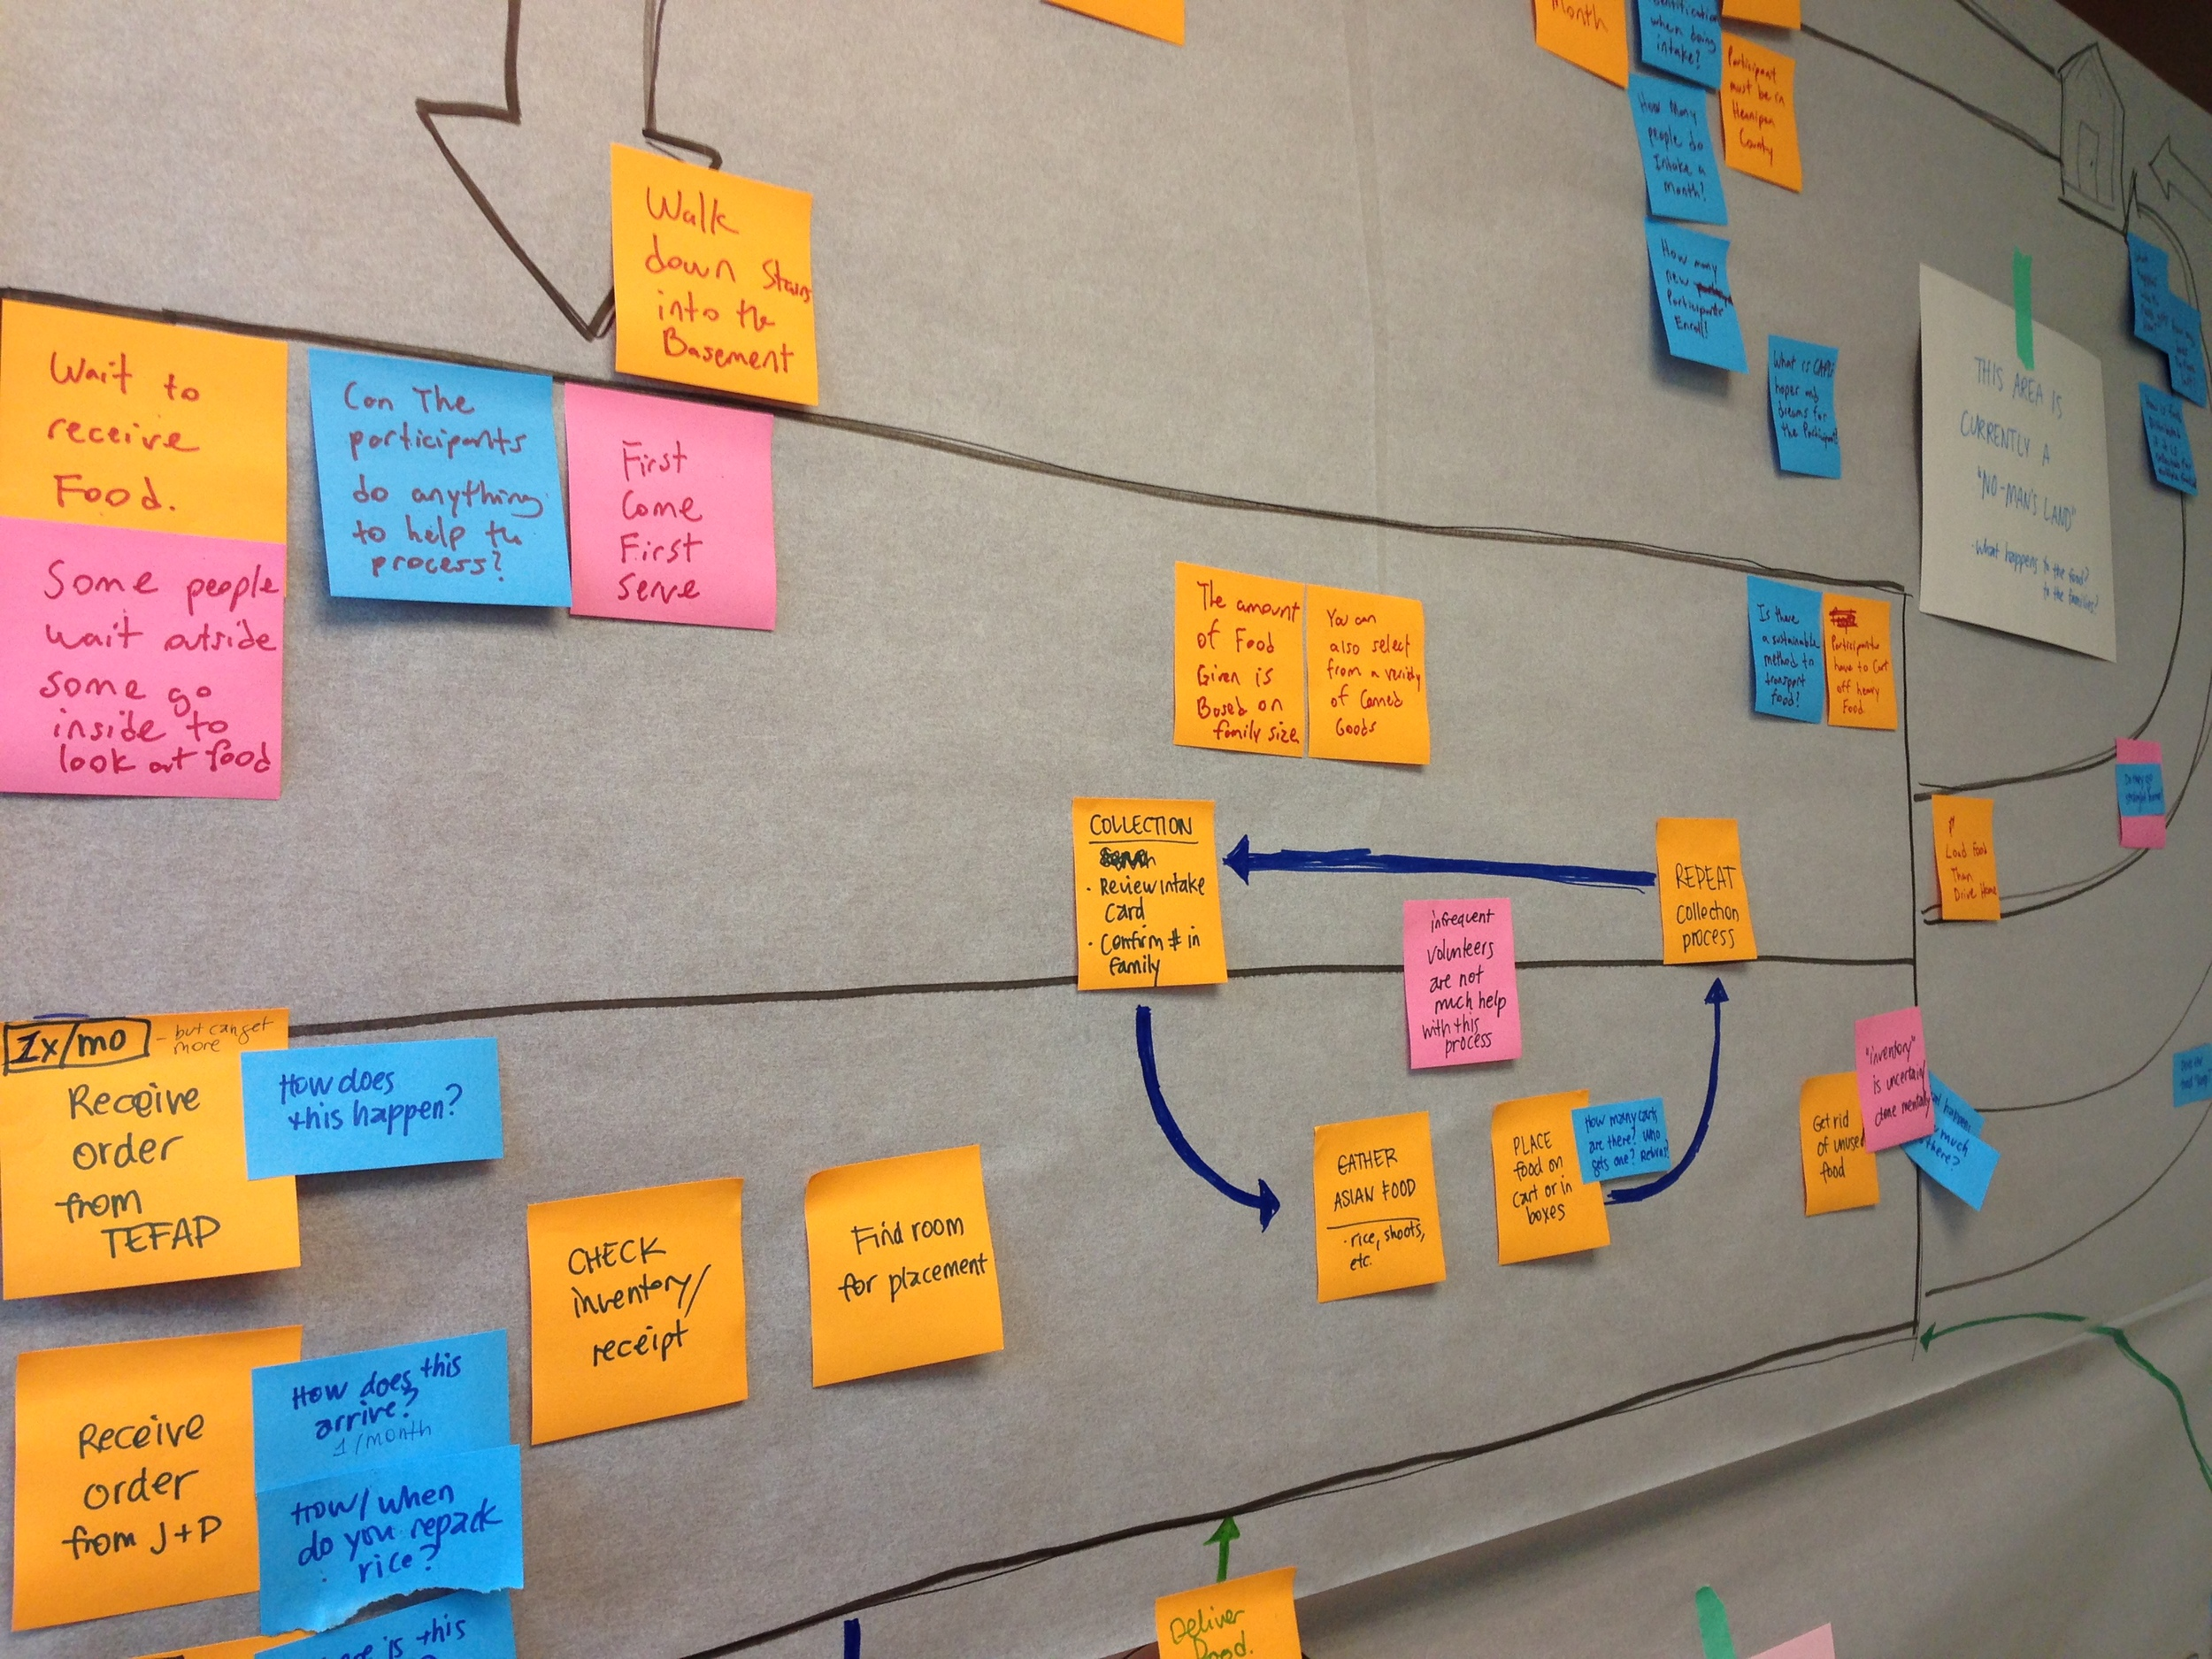 Customer journey map (detail view)